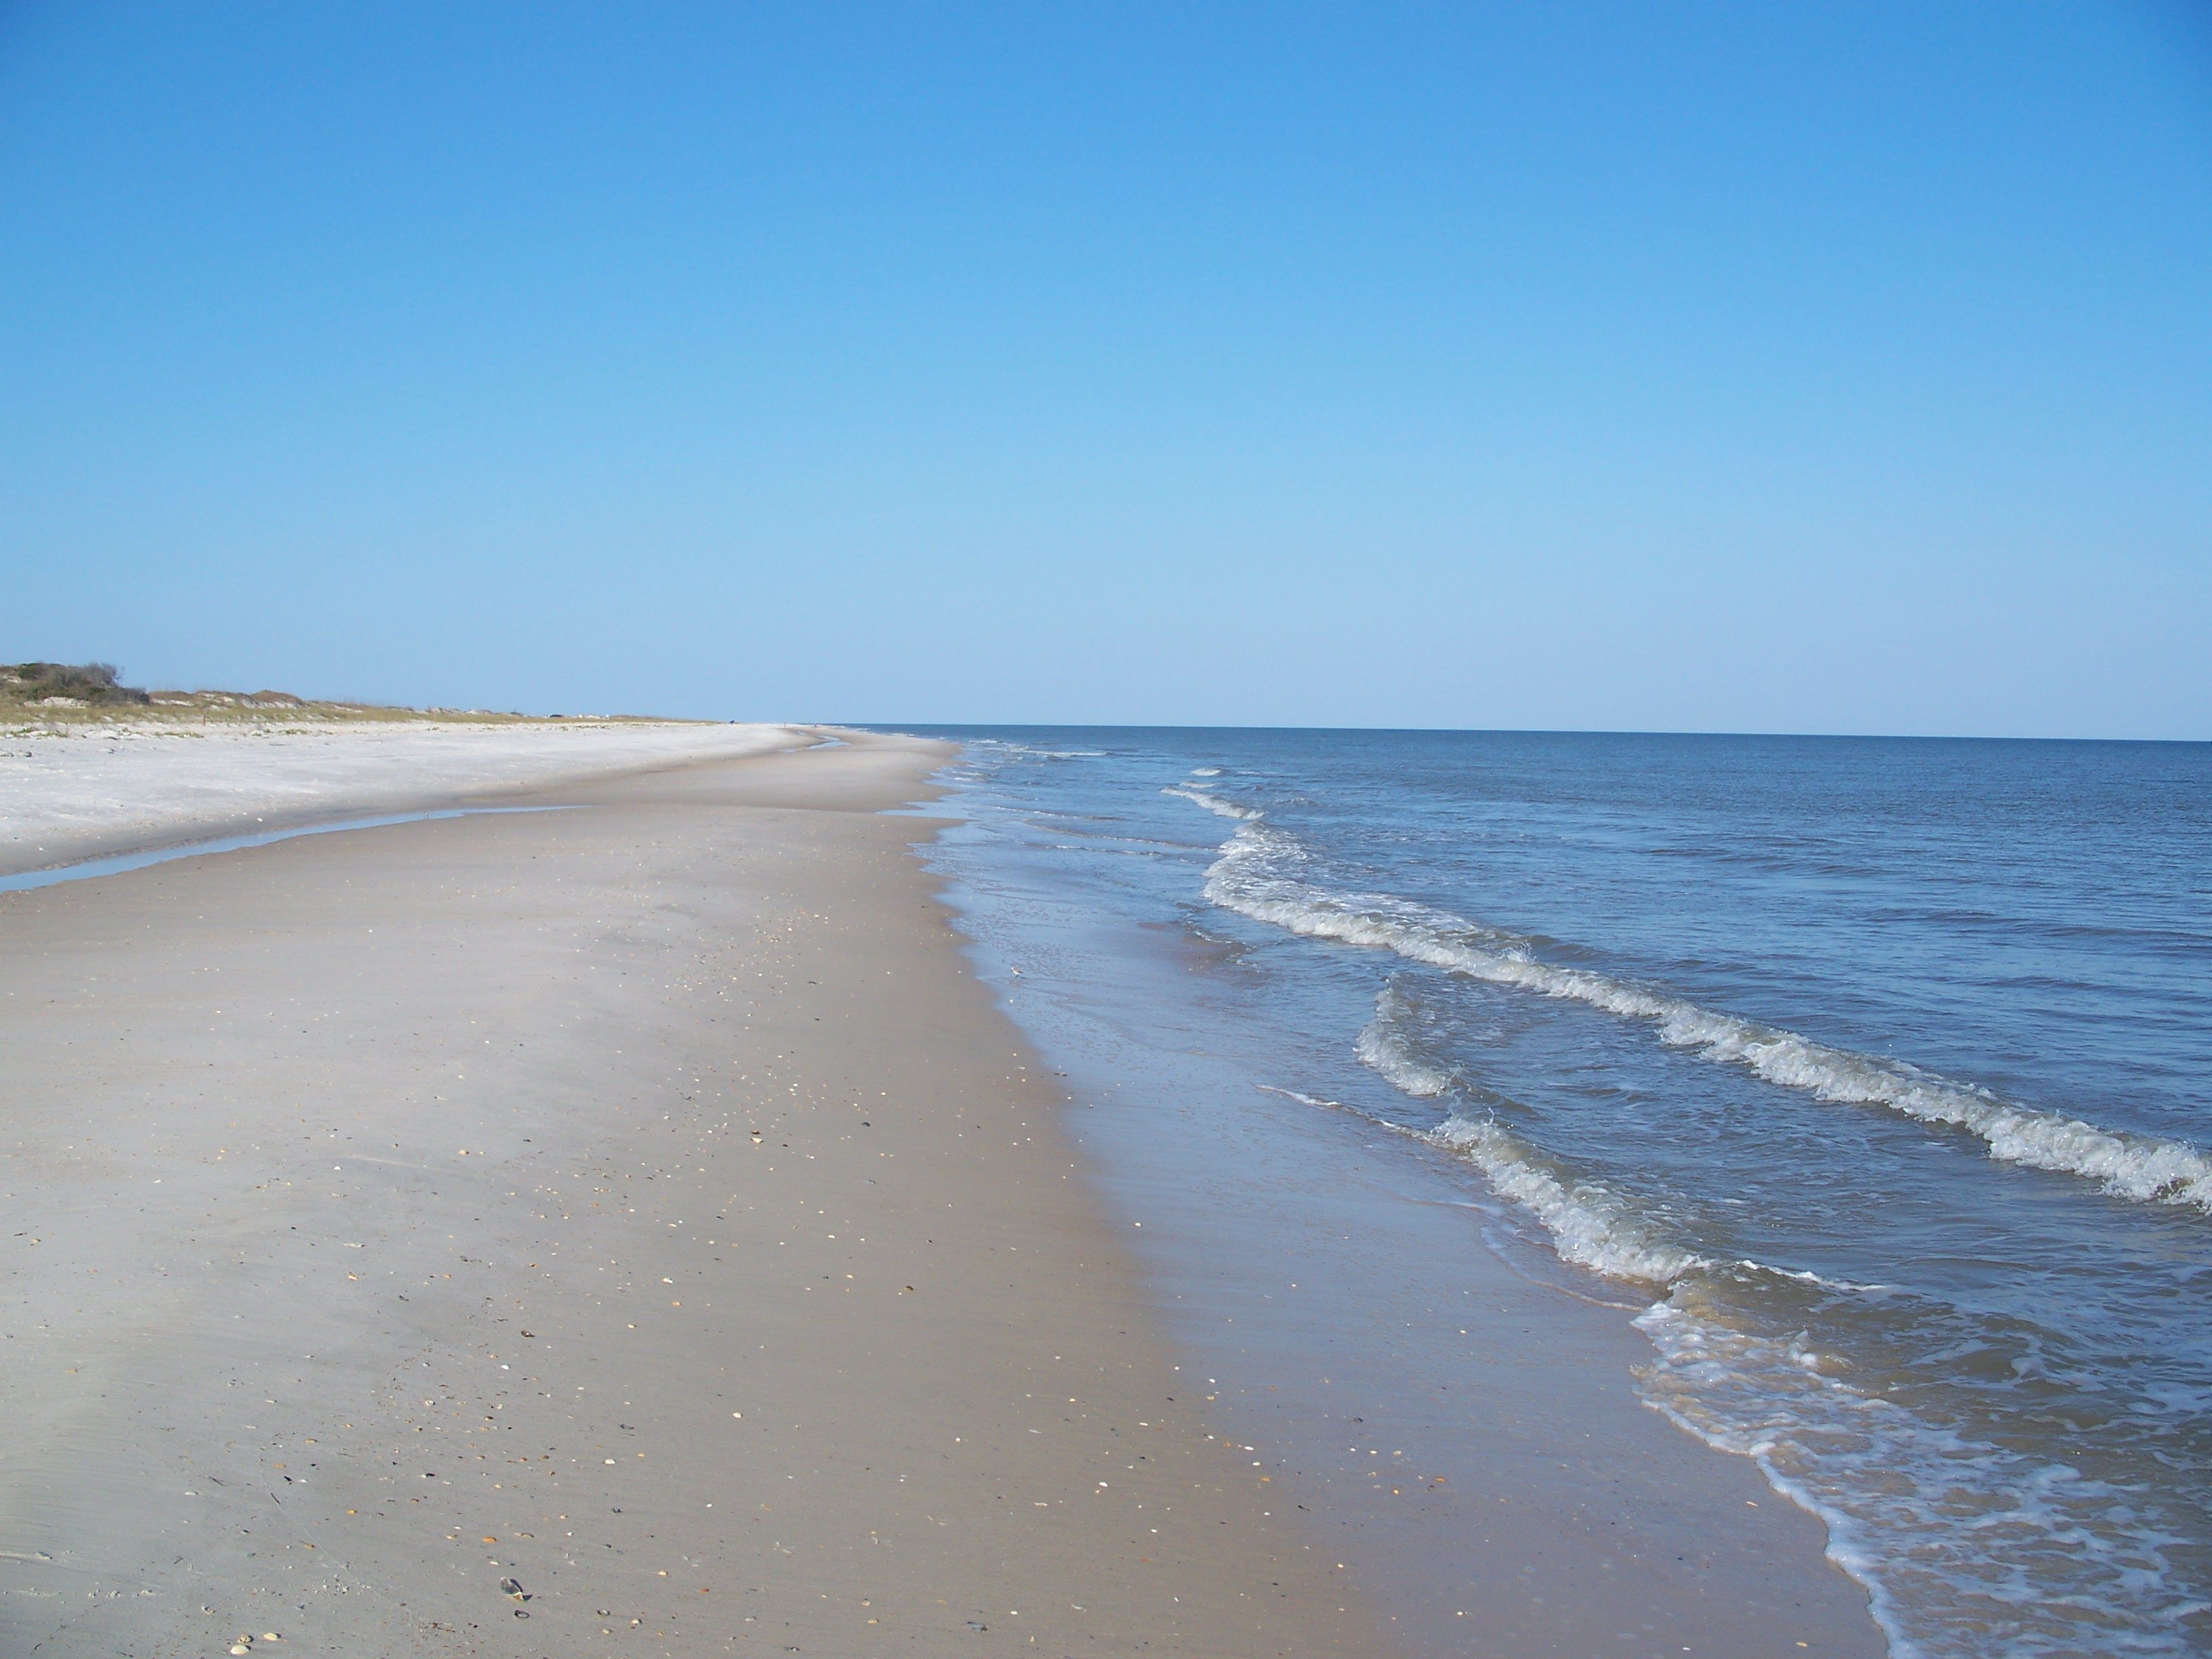 Top 6 Fun Things to Do on St. George Island With Kids